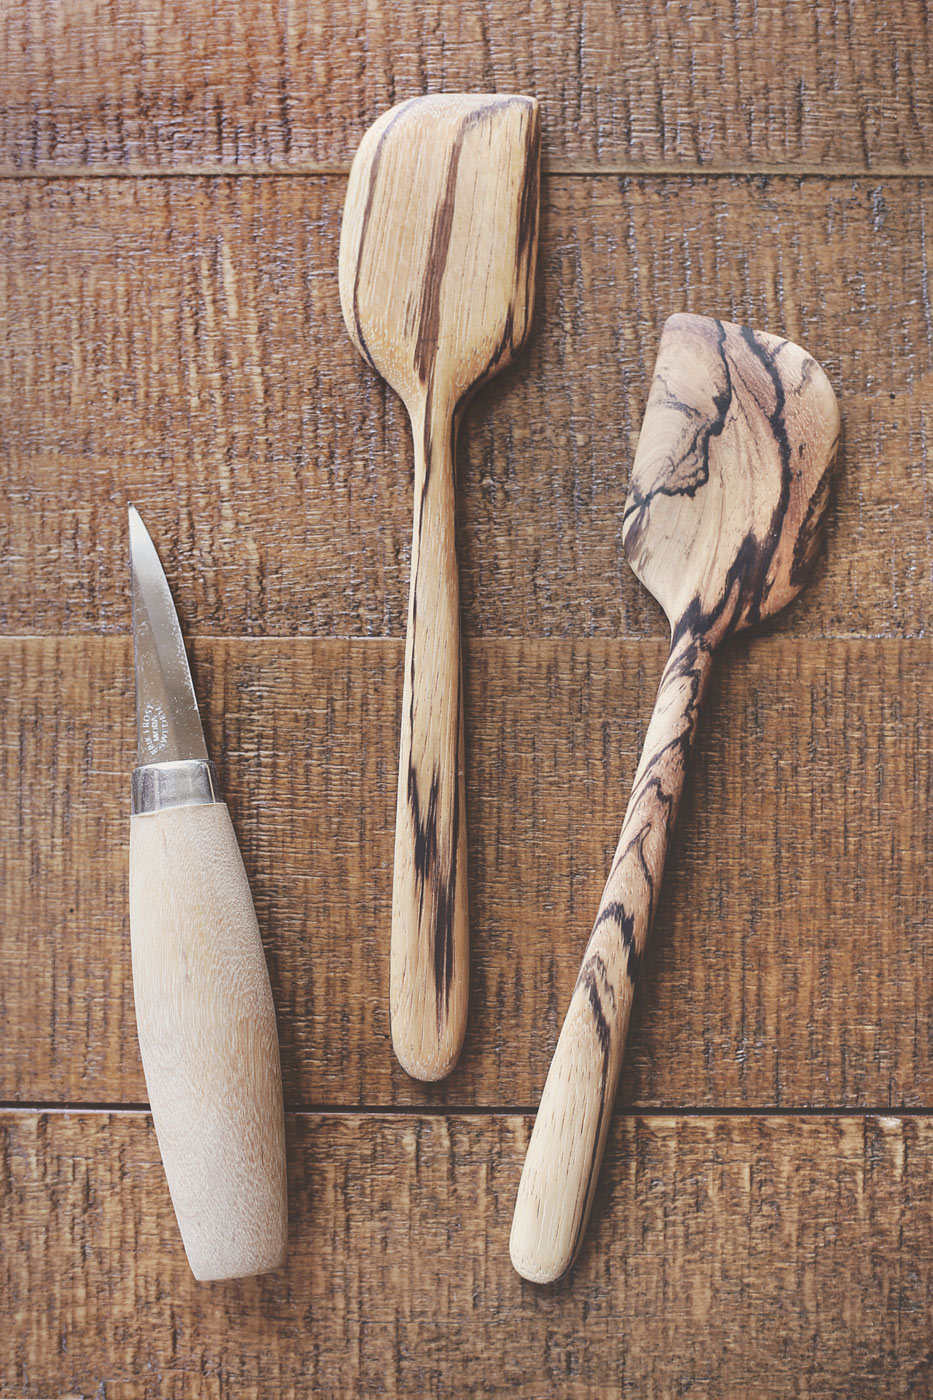 Hand-Carved Spatulas